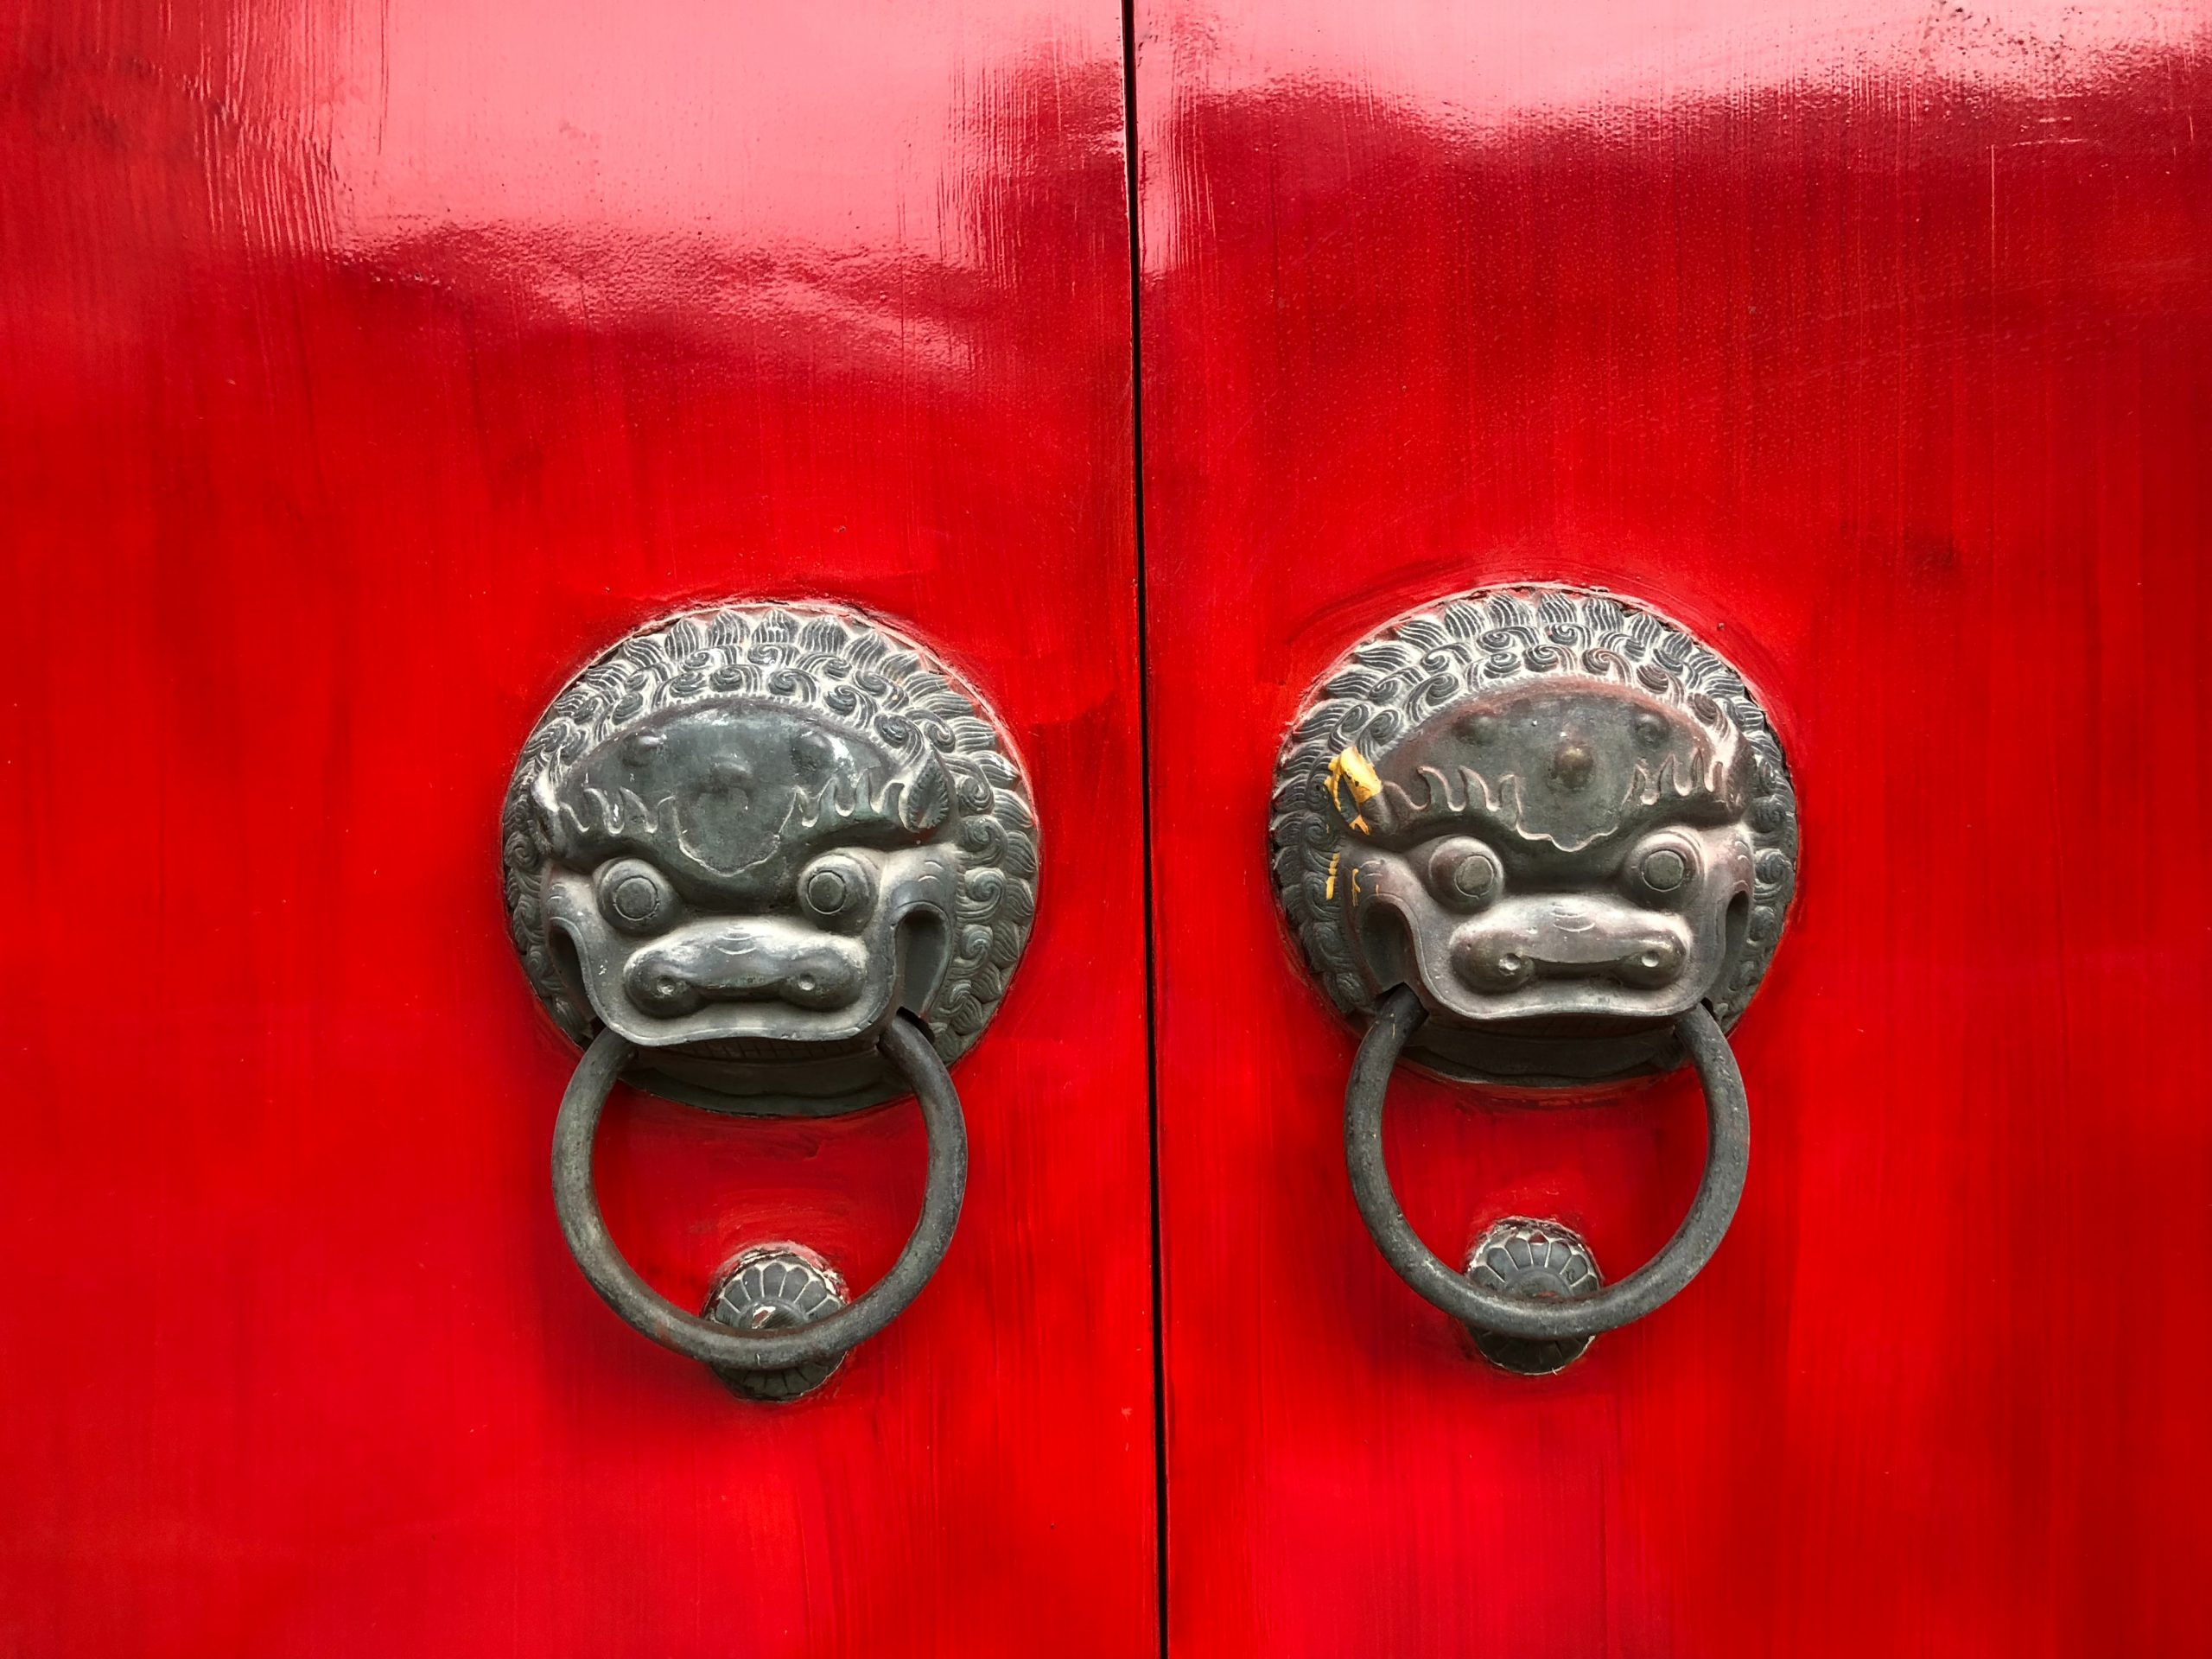 How to protect intellectual property by applying China's competition law